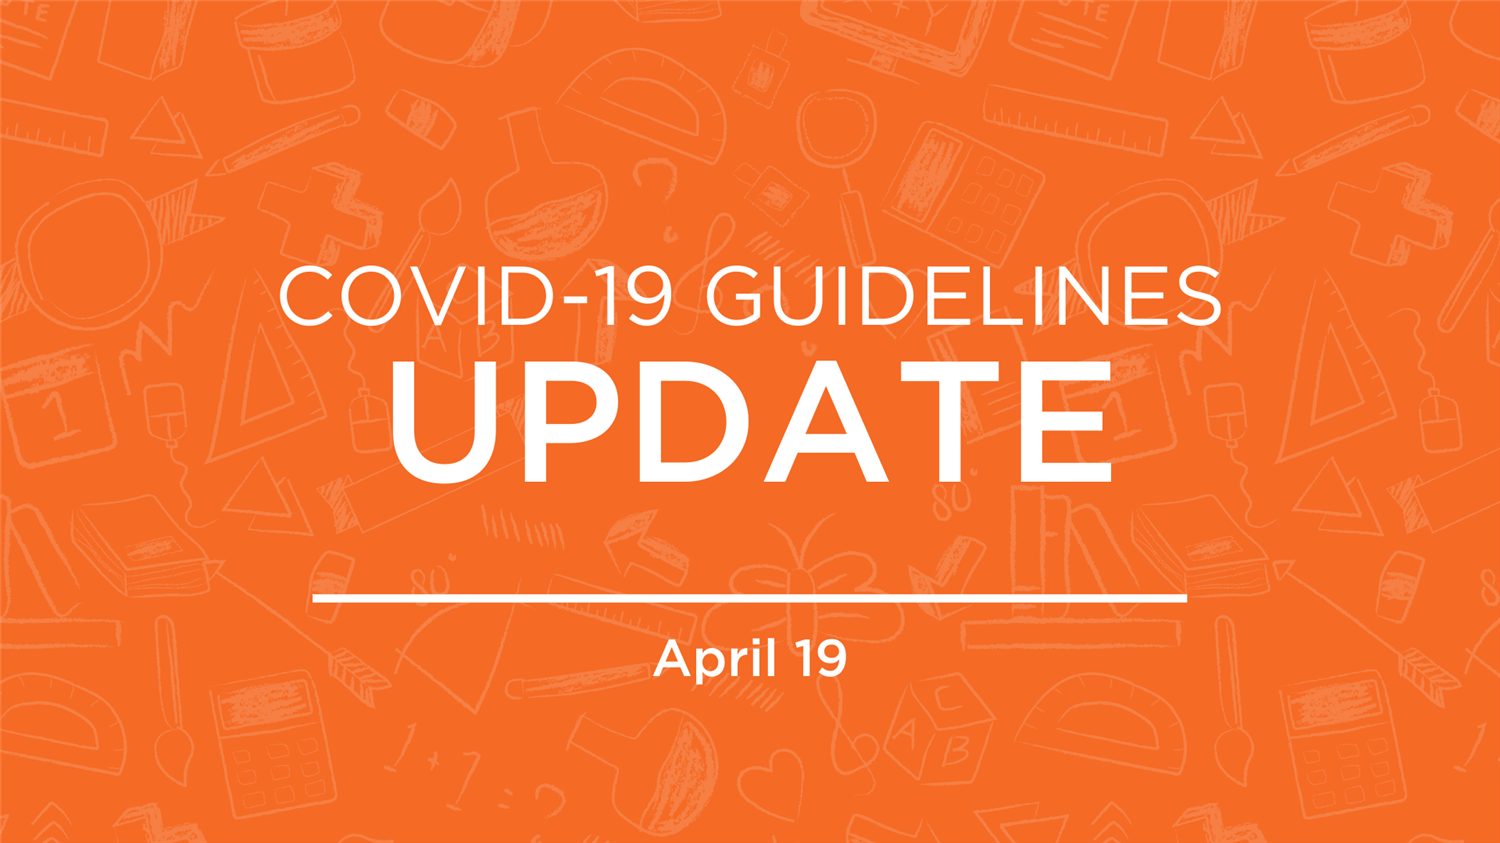 COVID-19 Operational Guidelines Update